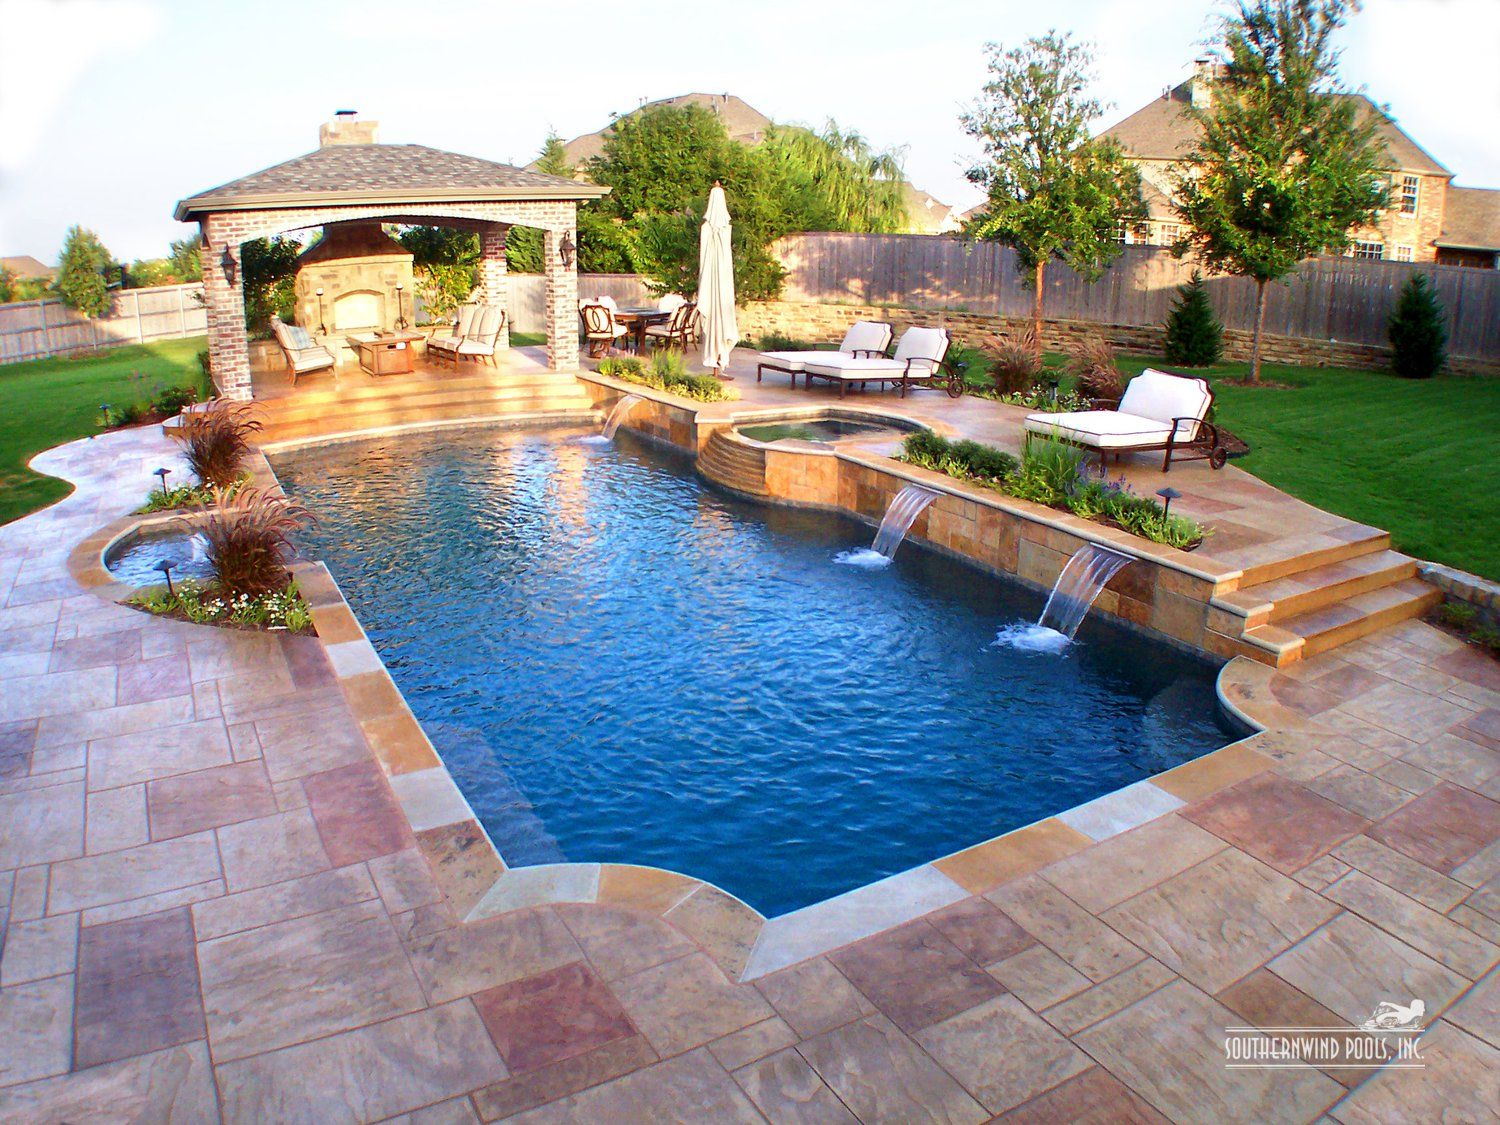 Backyard Paradise: The Perfect Pool By Southernwind, View 1